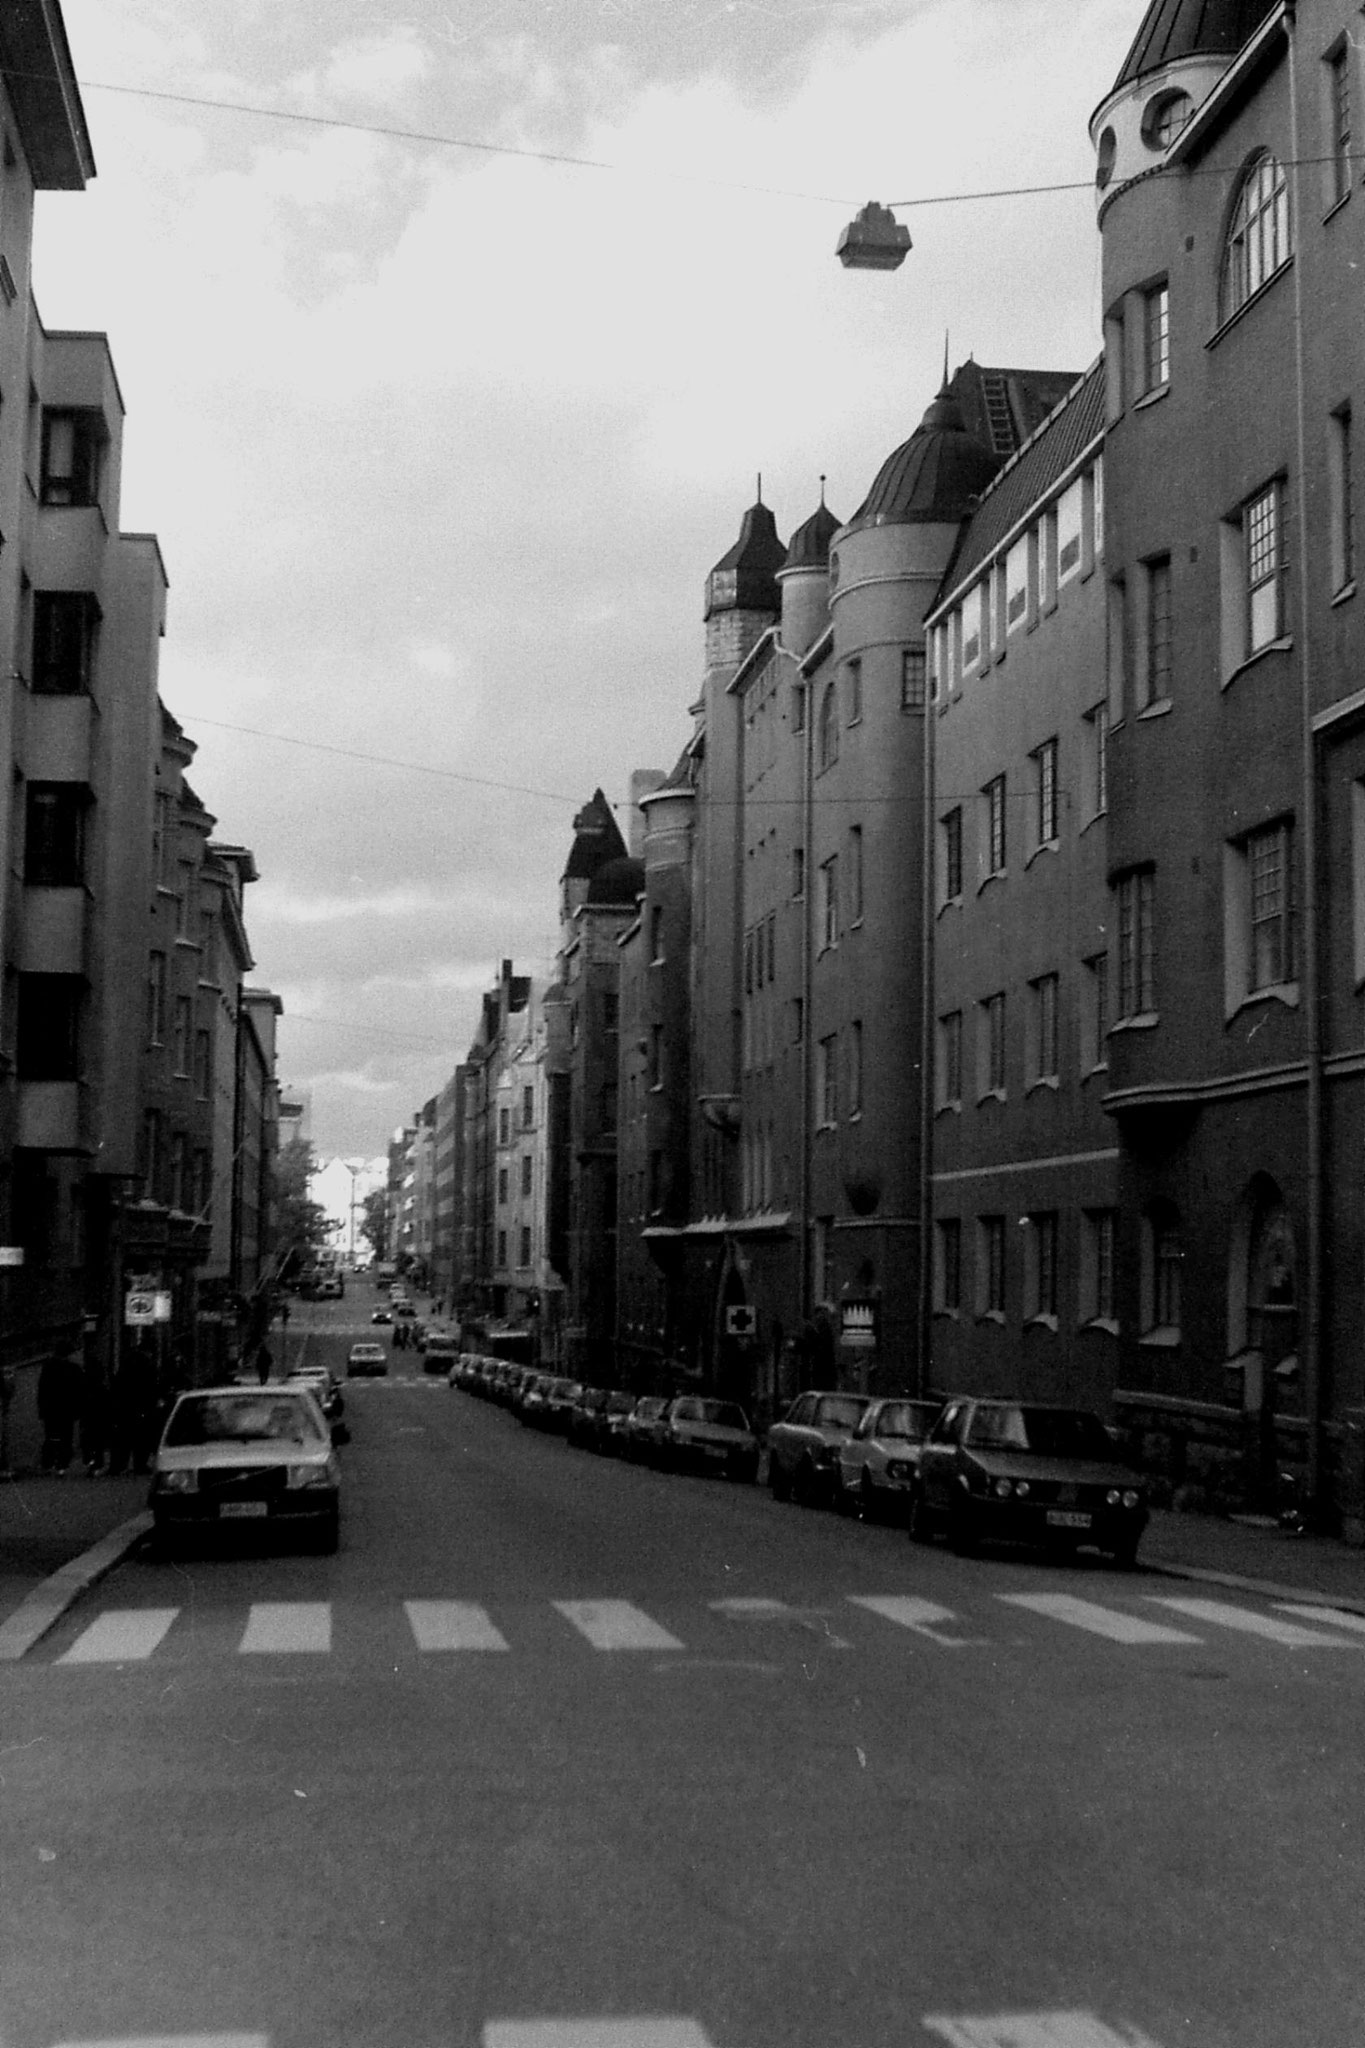 2/10/1988: 18: Jugenstil at Albertinkatu